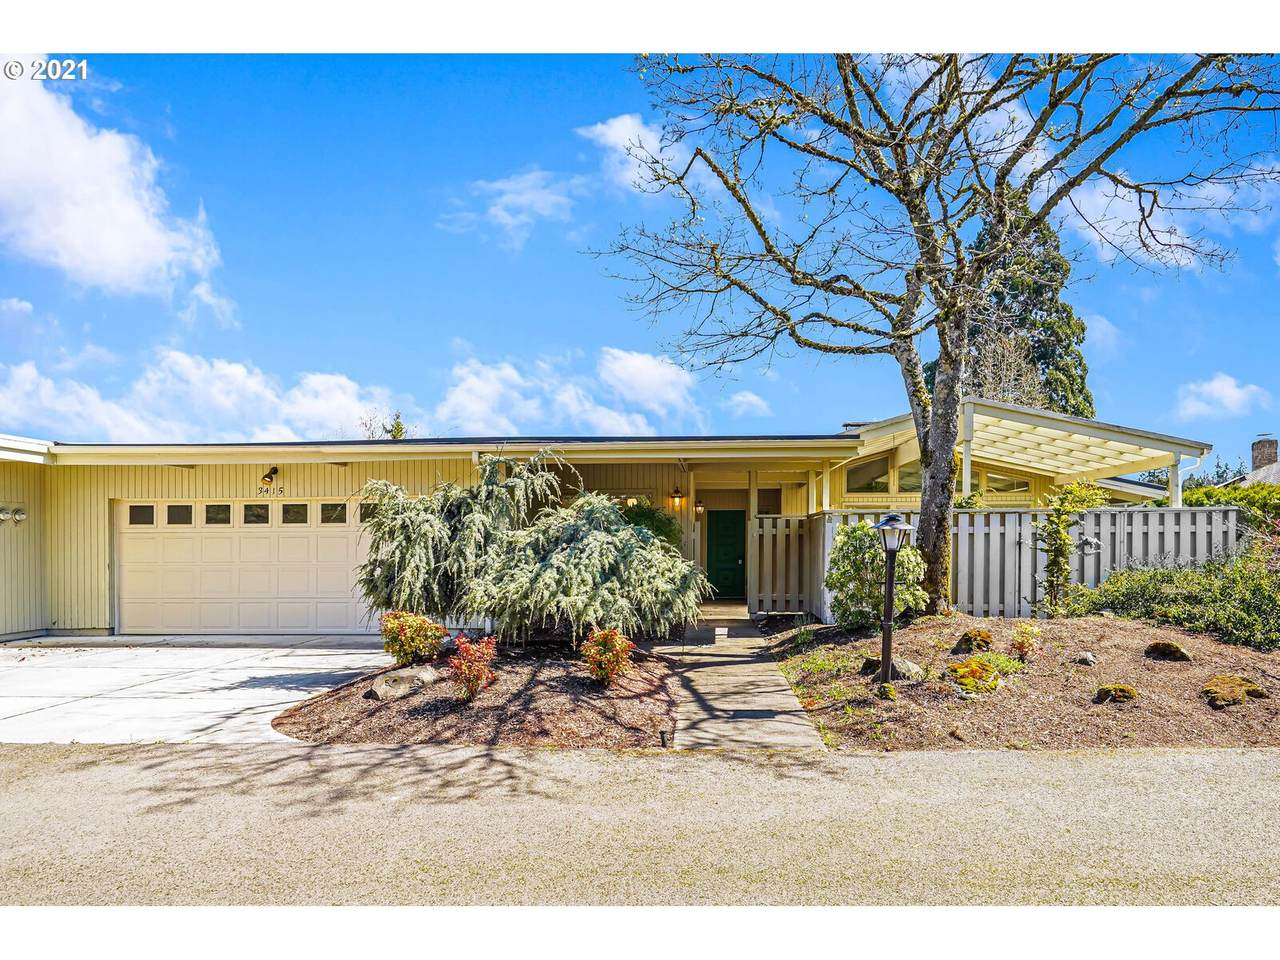 3415 Country Club Dr - Photo 1